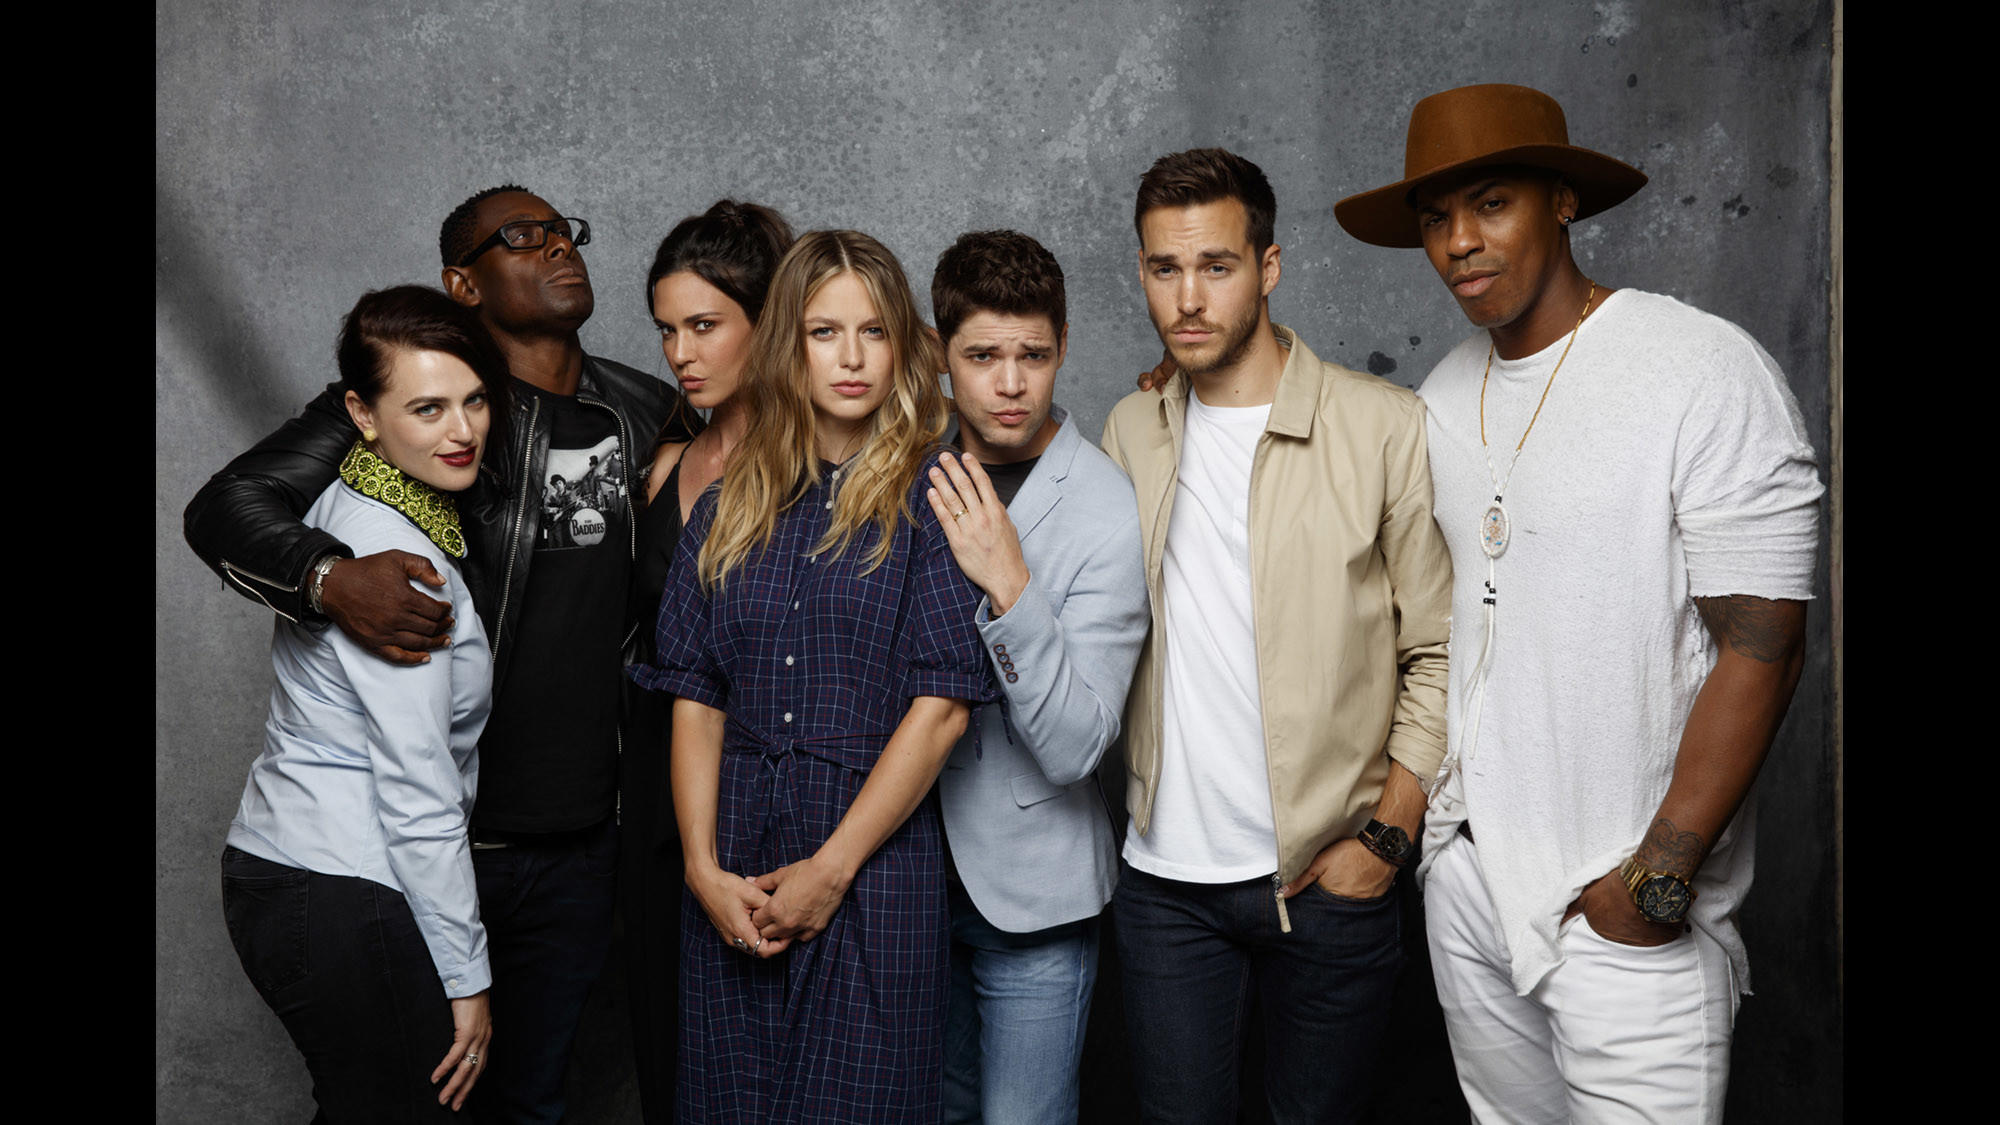 Katie McGrath, David Harewood, Odette Annable, Jeremy Jordan, Melissa Benoist, Chris Wood és Mehcad Brooks.